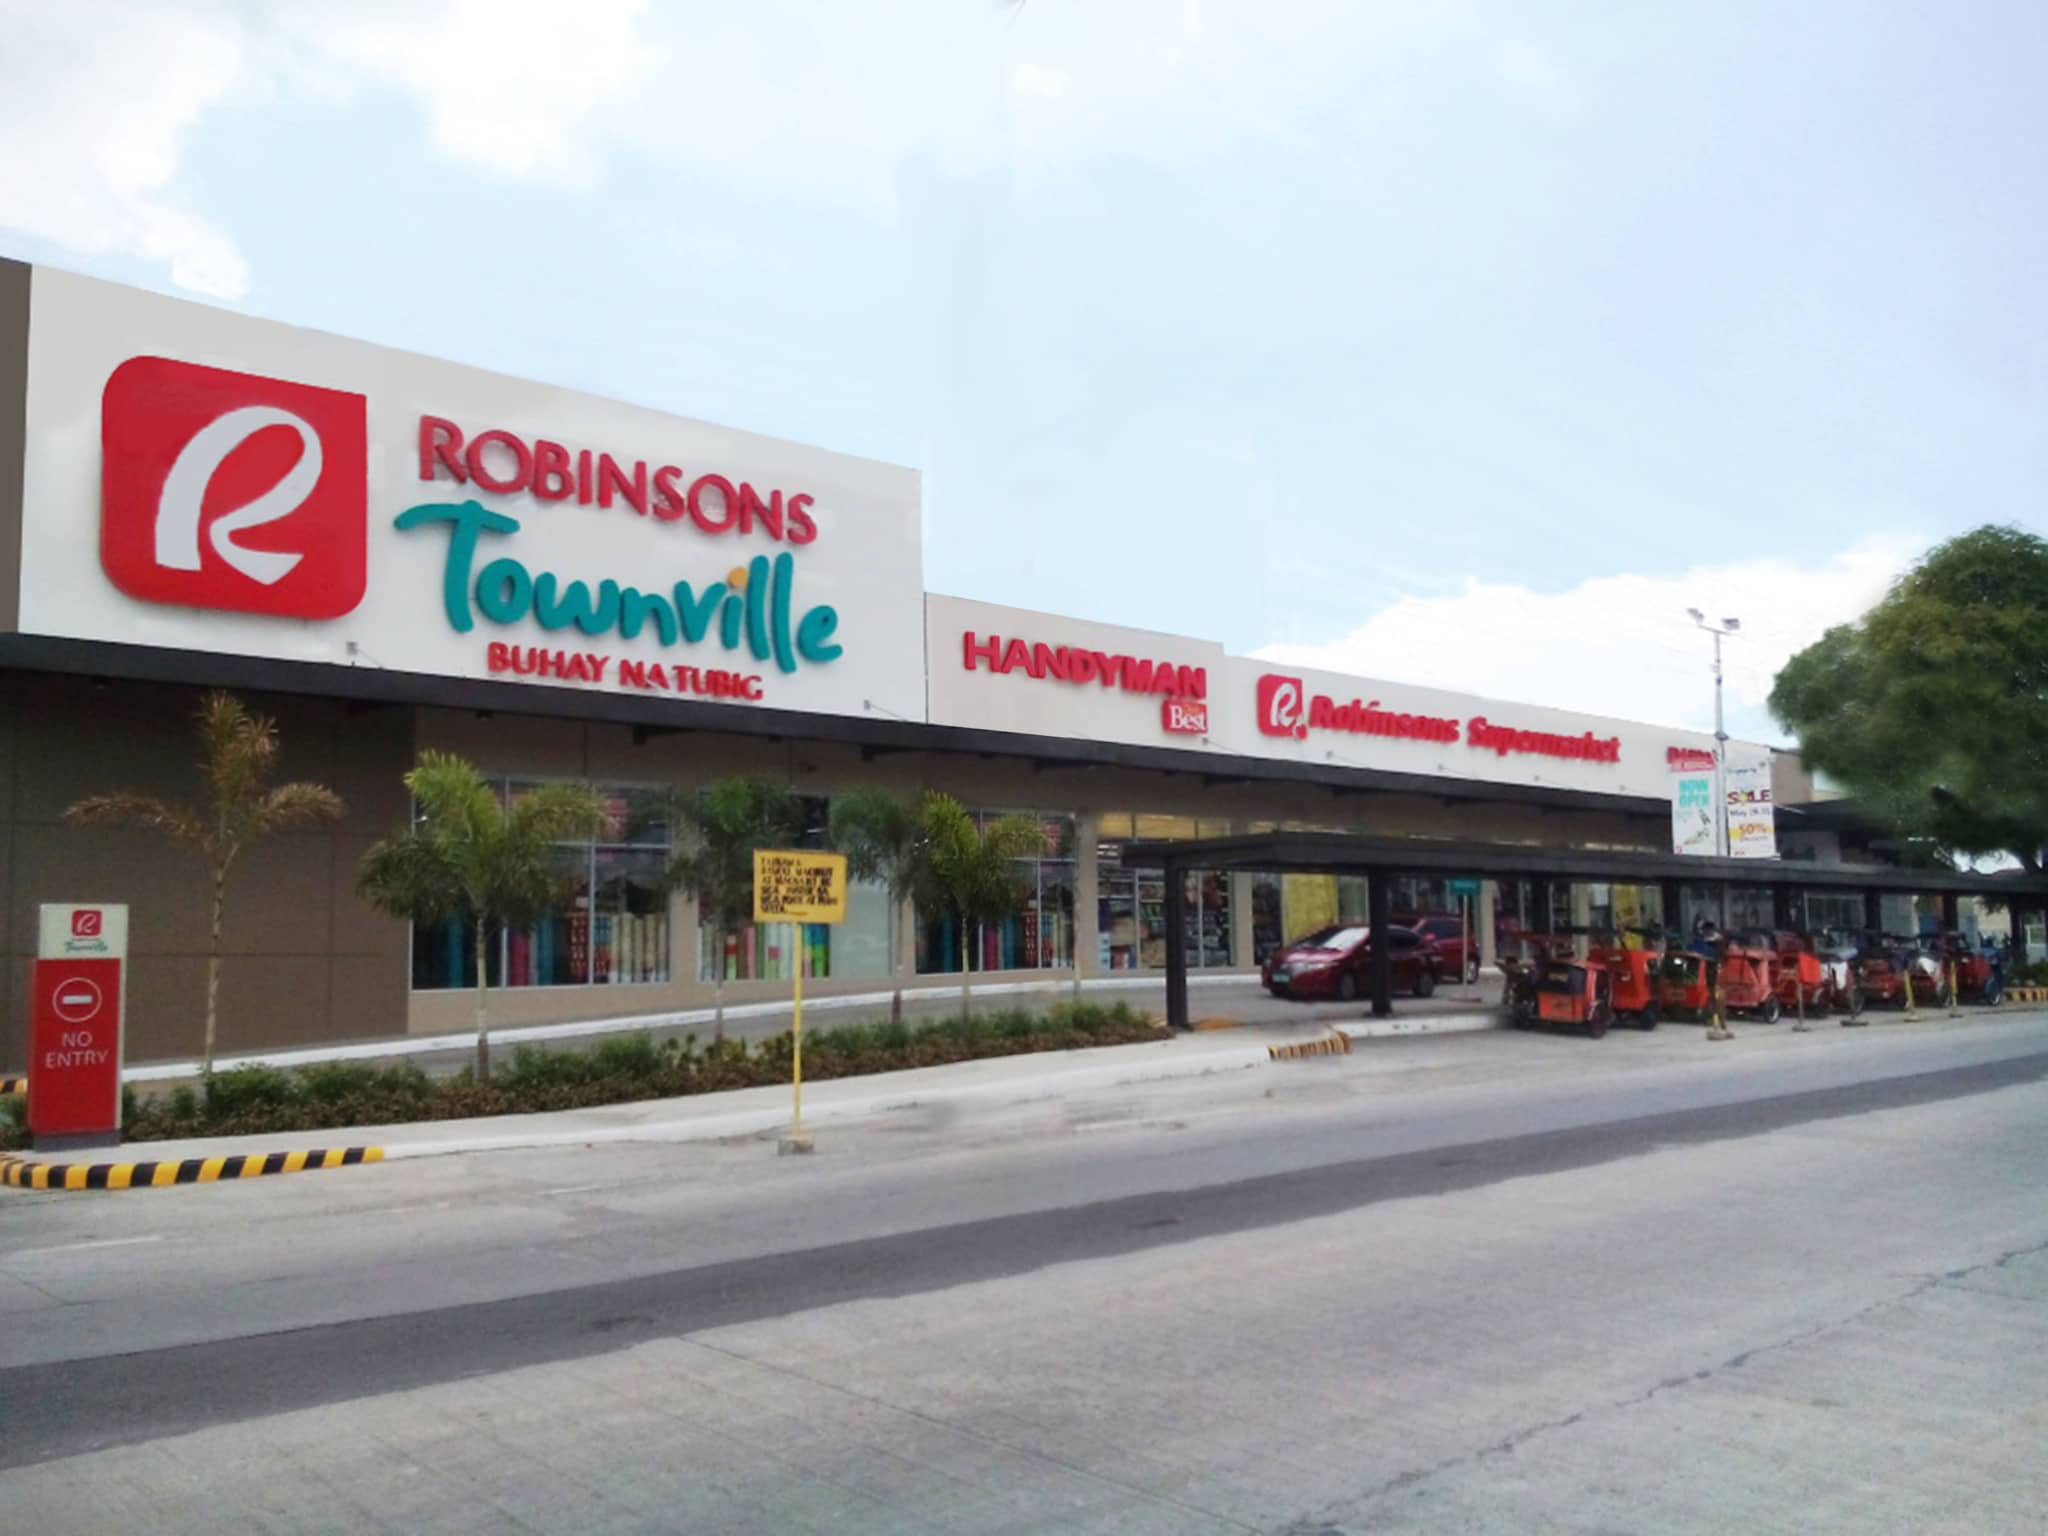 Robinsons Kidz Club Fair brings a world of learning and fun for kids at Robinsons Townville